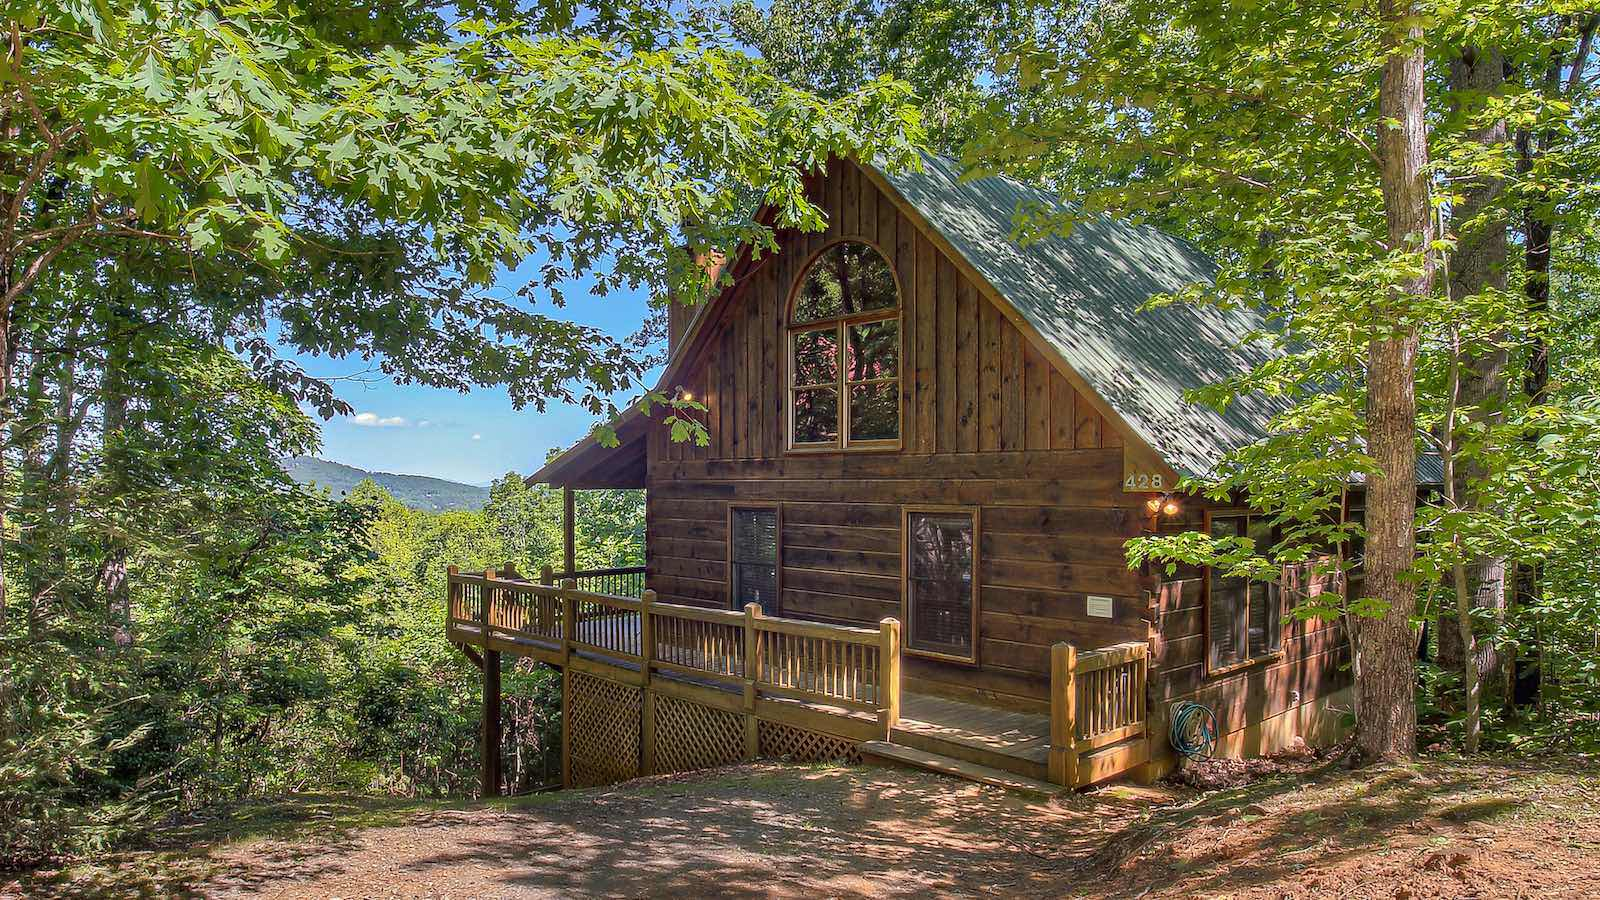 ga sundance ridge rent cabins renals rental blue cabin rentals in near georgia